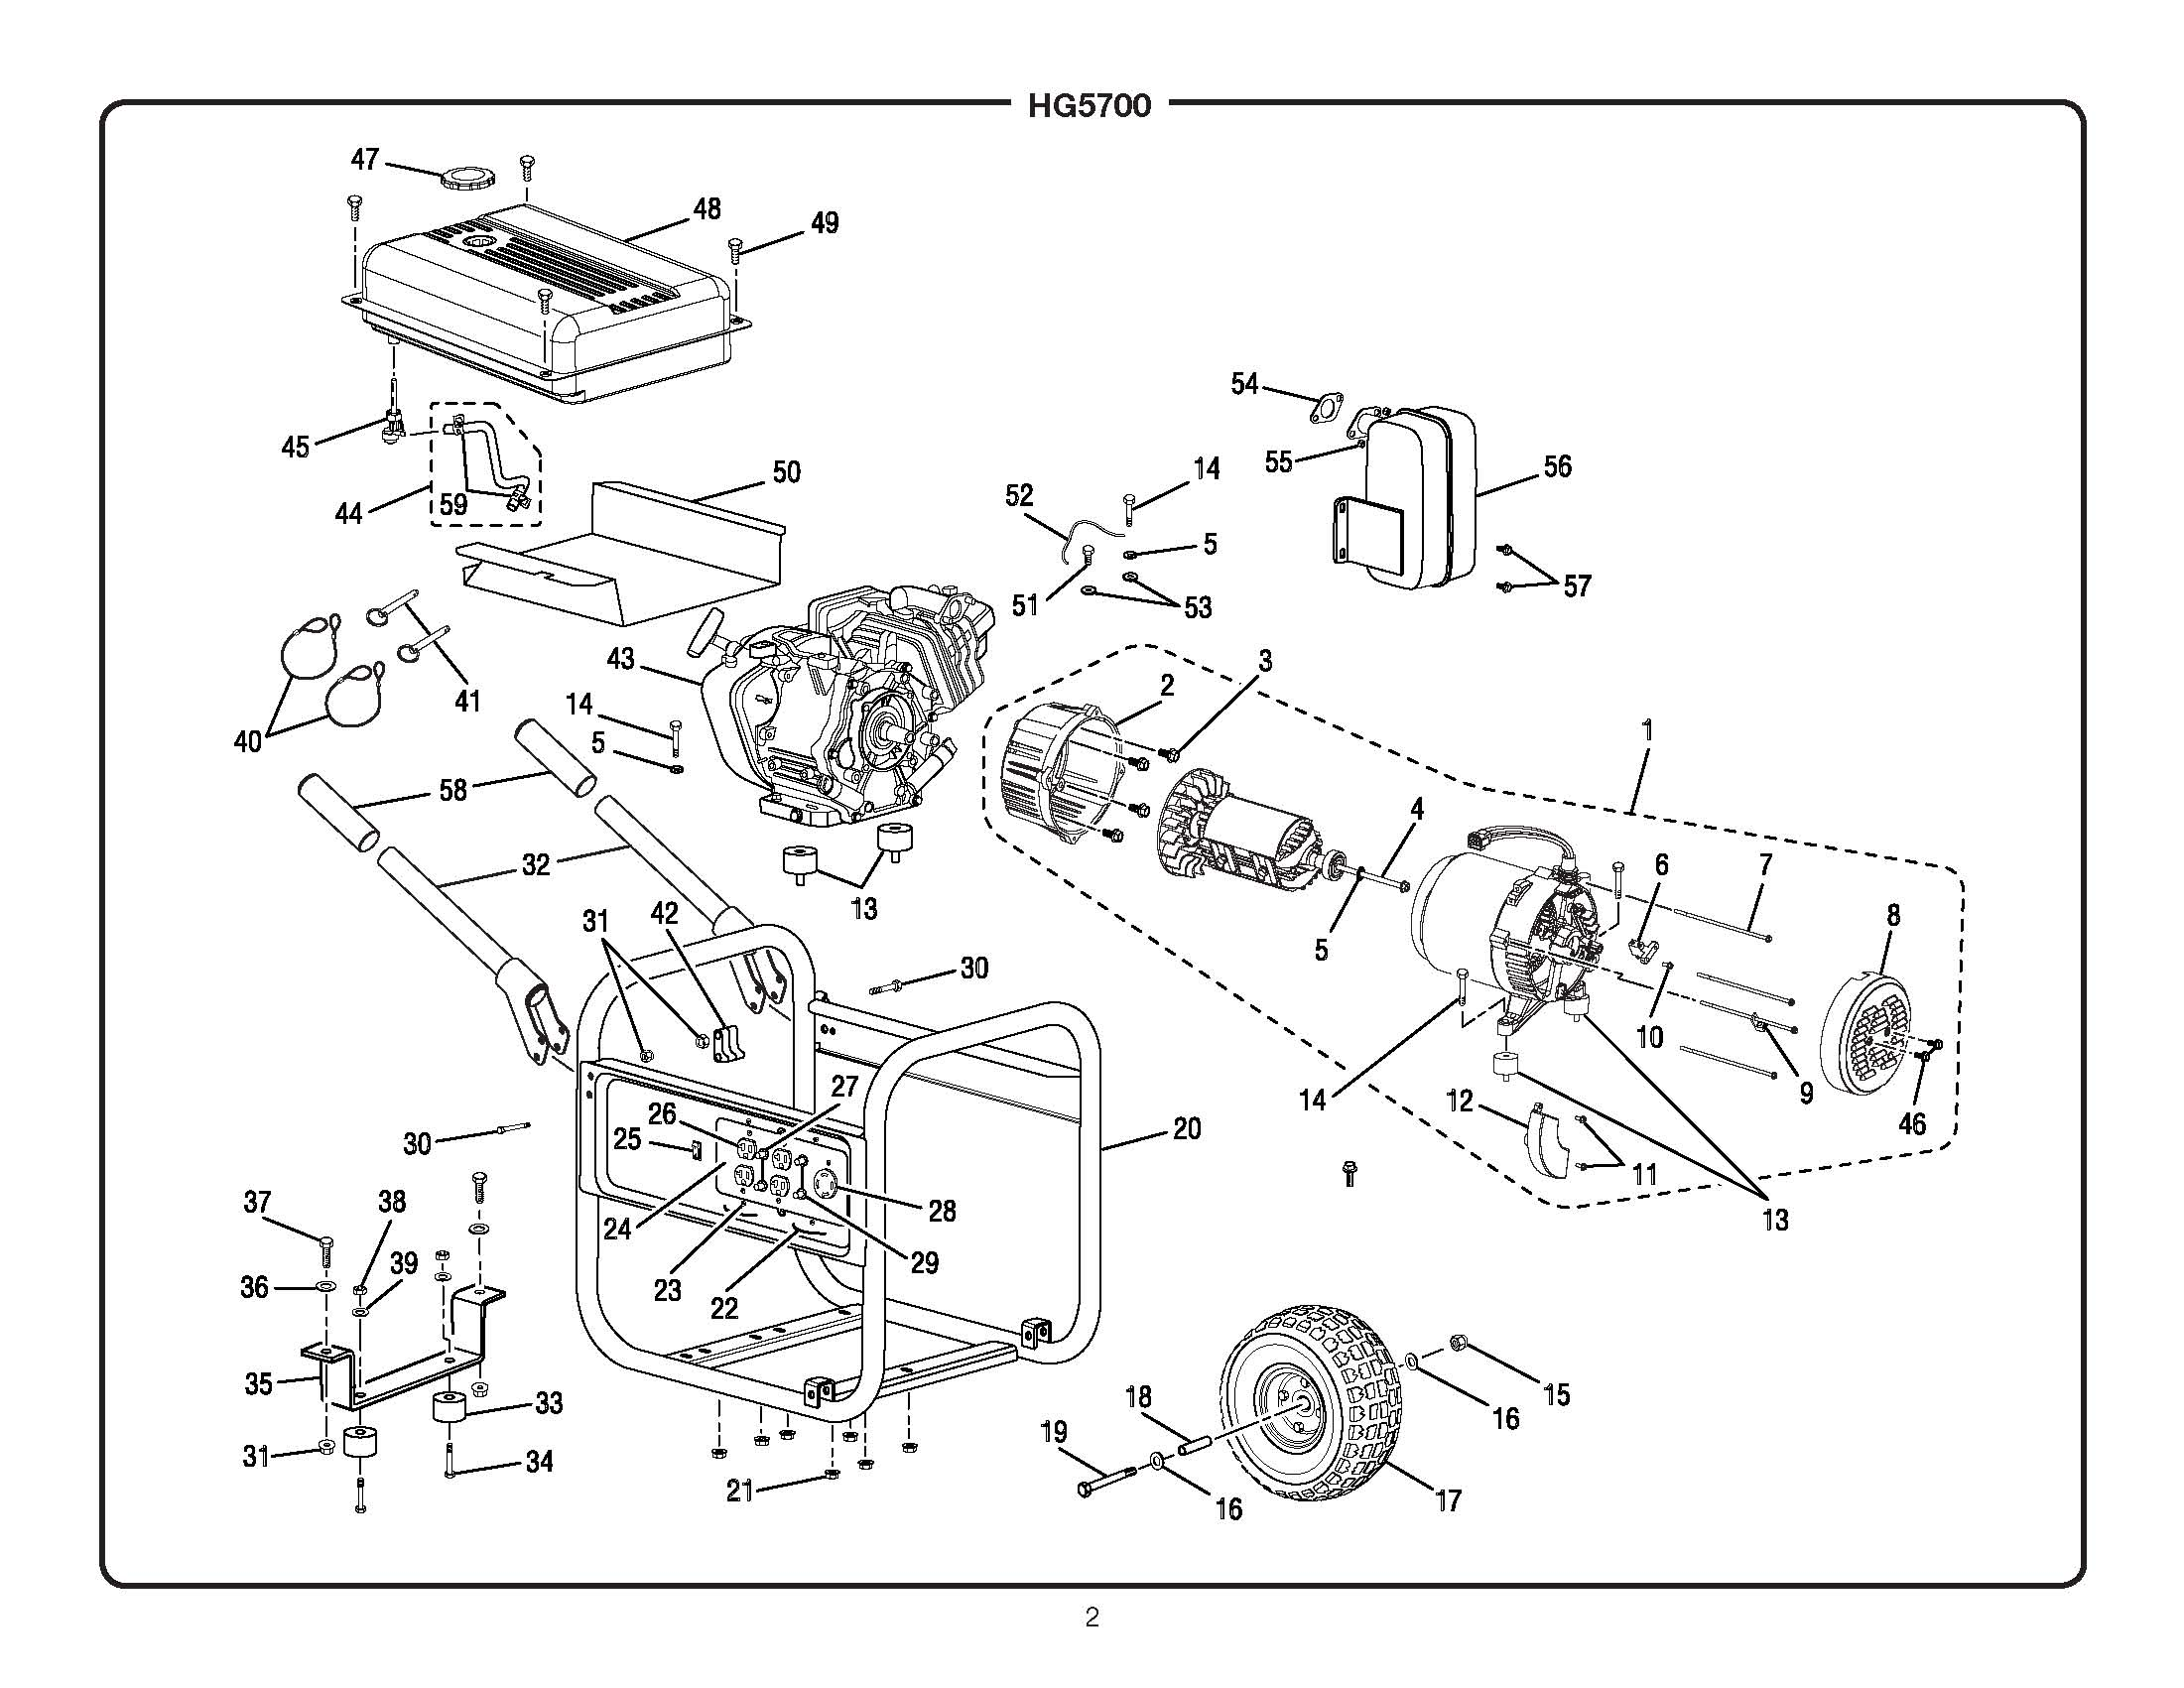 Sears Craftsman 4000 Watt Generator Manual Wiring Diagram Parts Hg5700